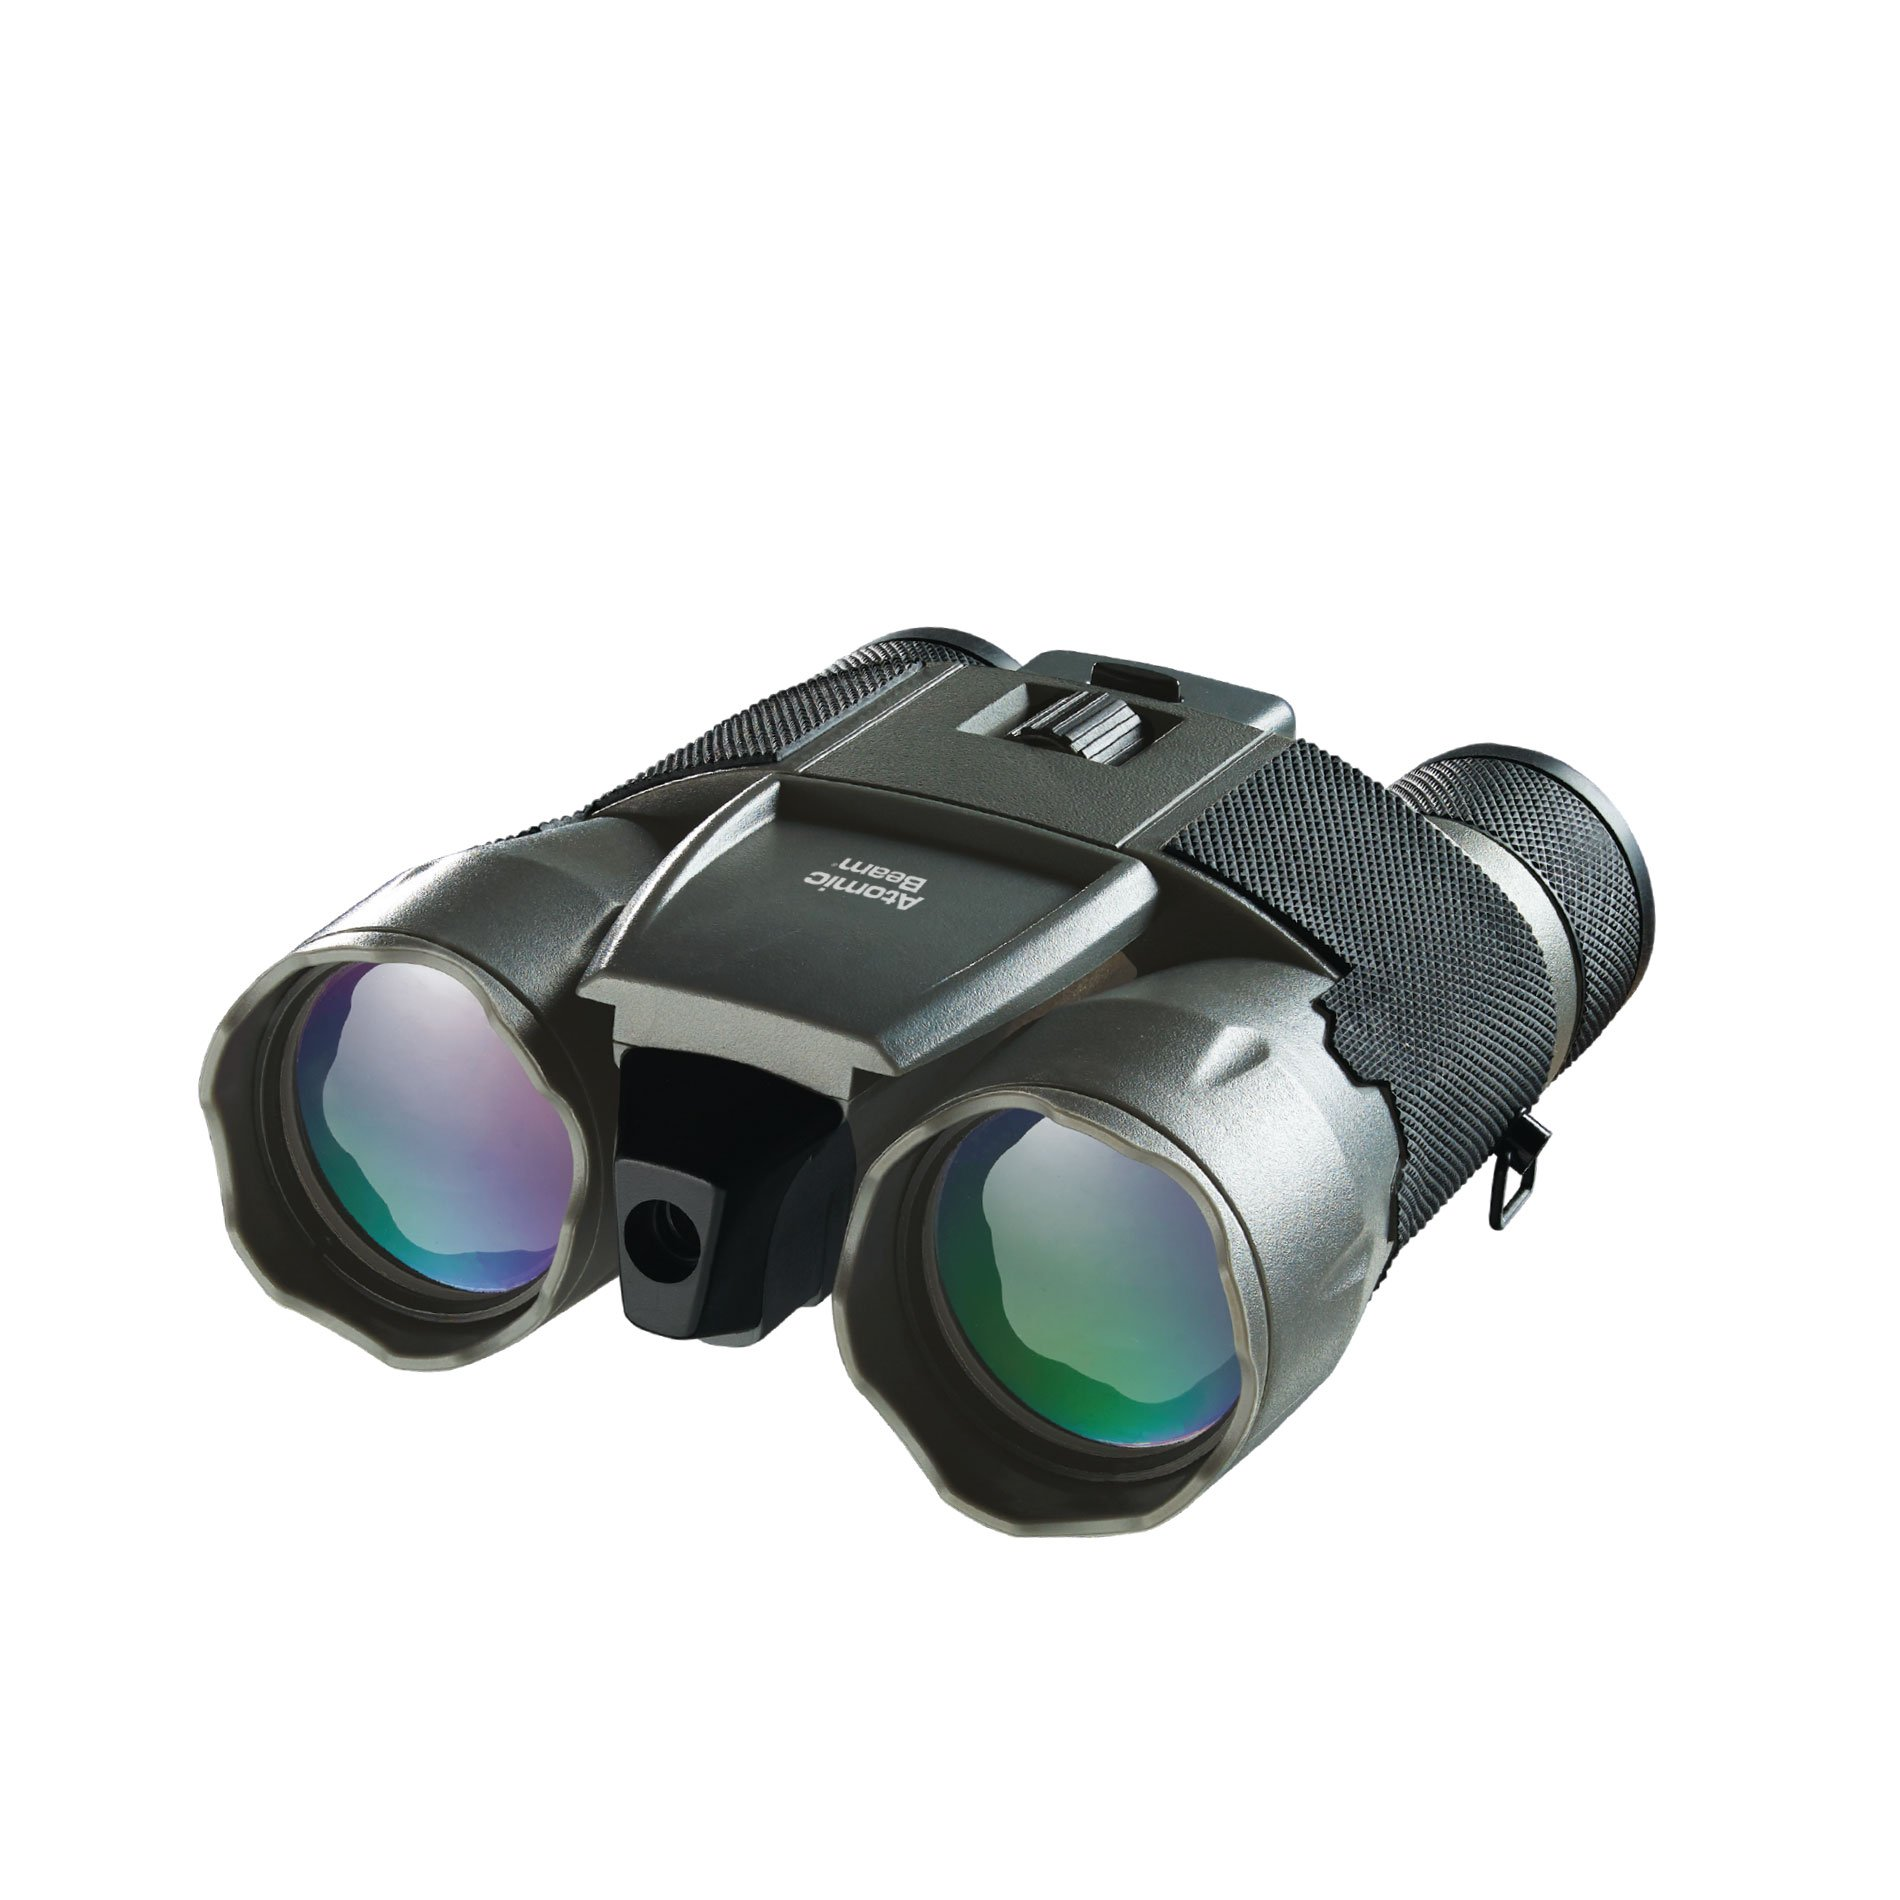 Atomic Beam Night Hero Binoculars by BulbHead, Reveals Objects 150-Yards Away, Full Range of Focal Adjustments, 10x Magnification by Atomic Beam